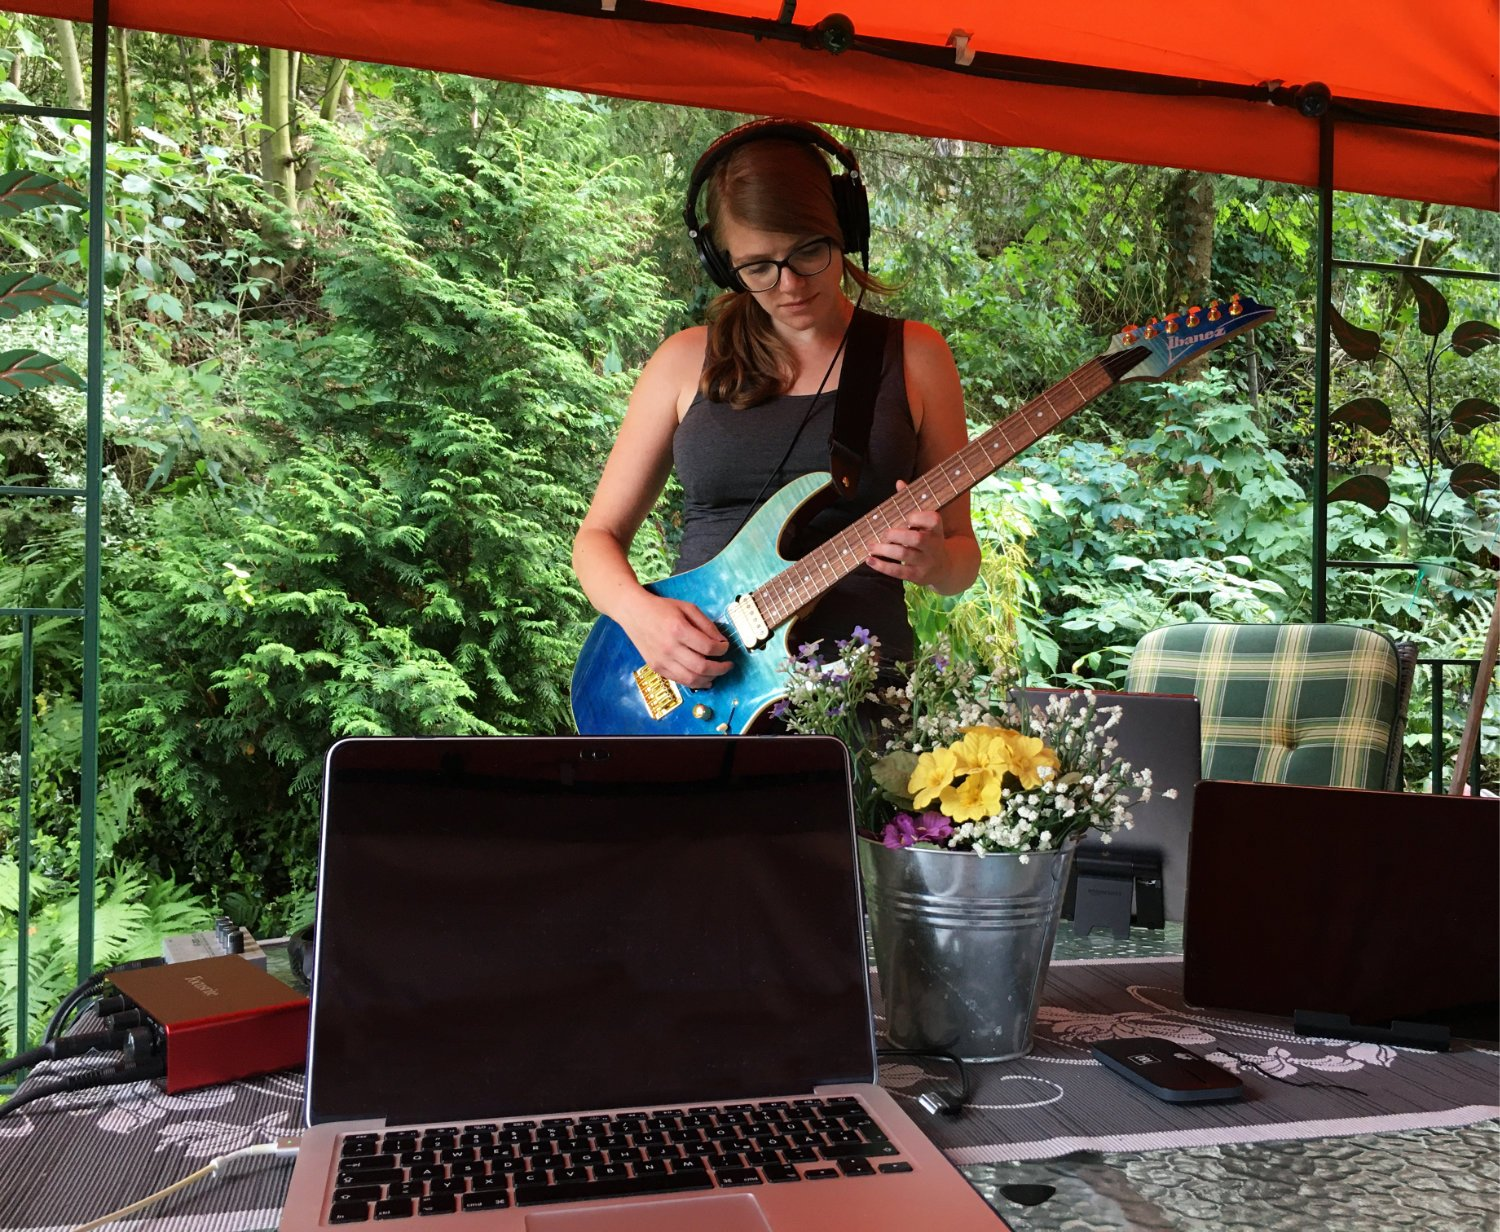 Anja playing a blue guitar in the garden